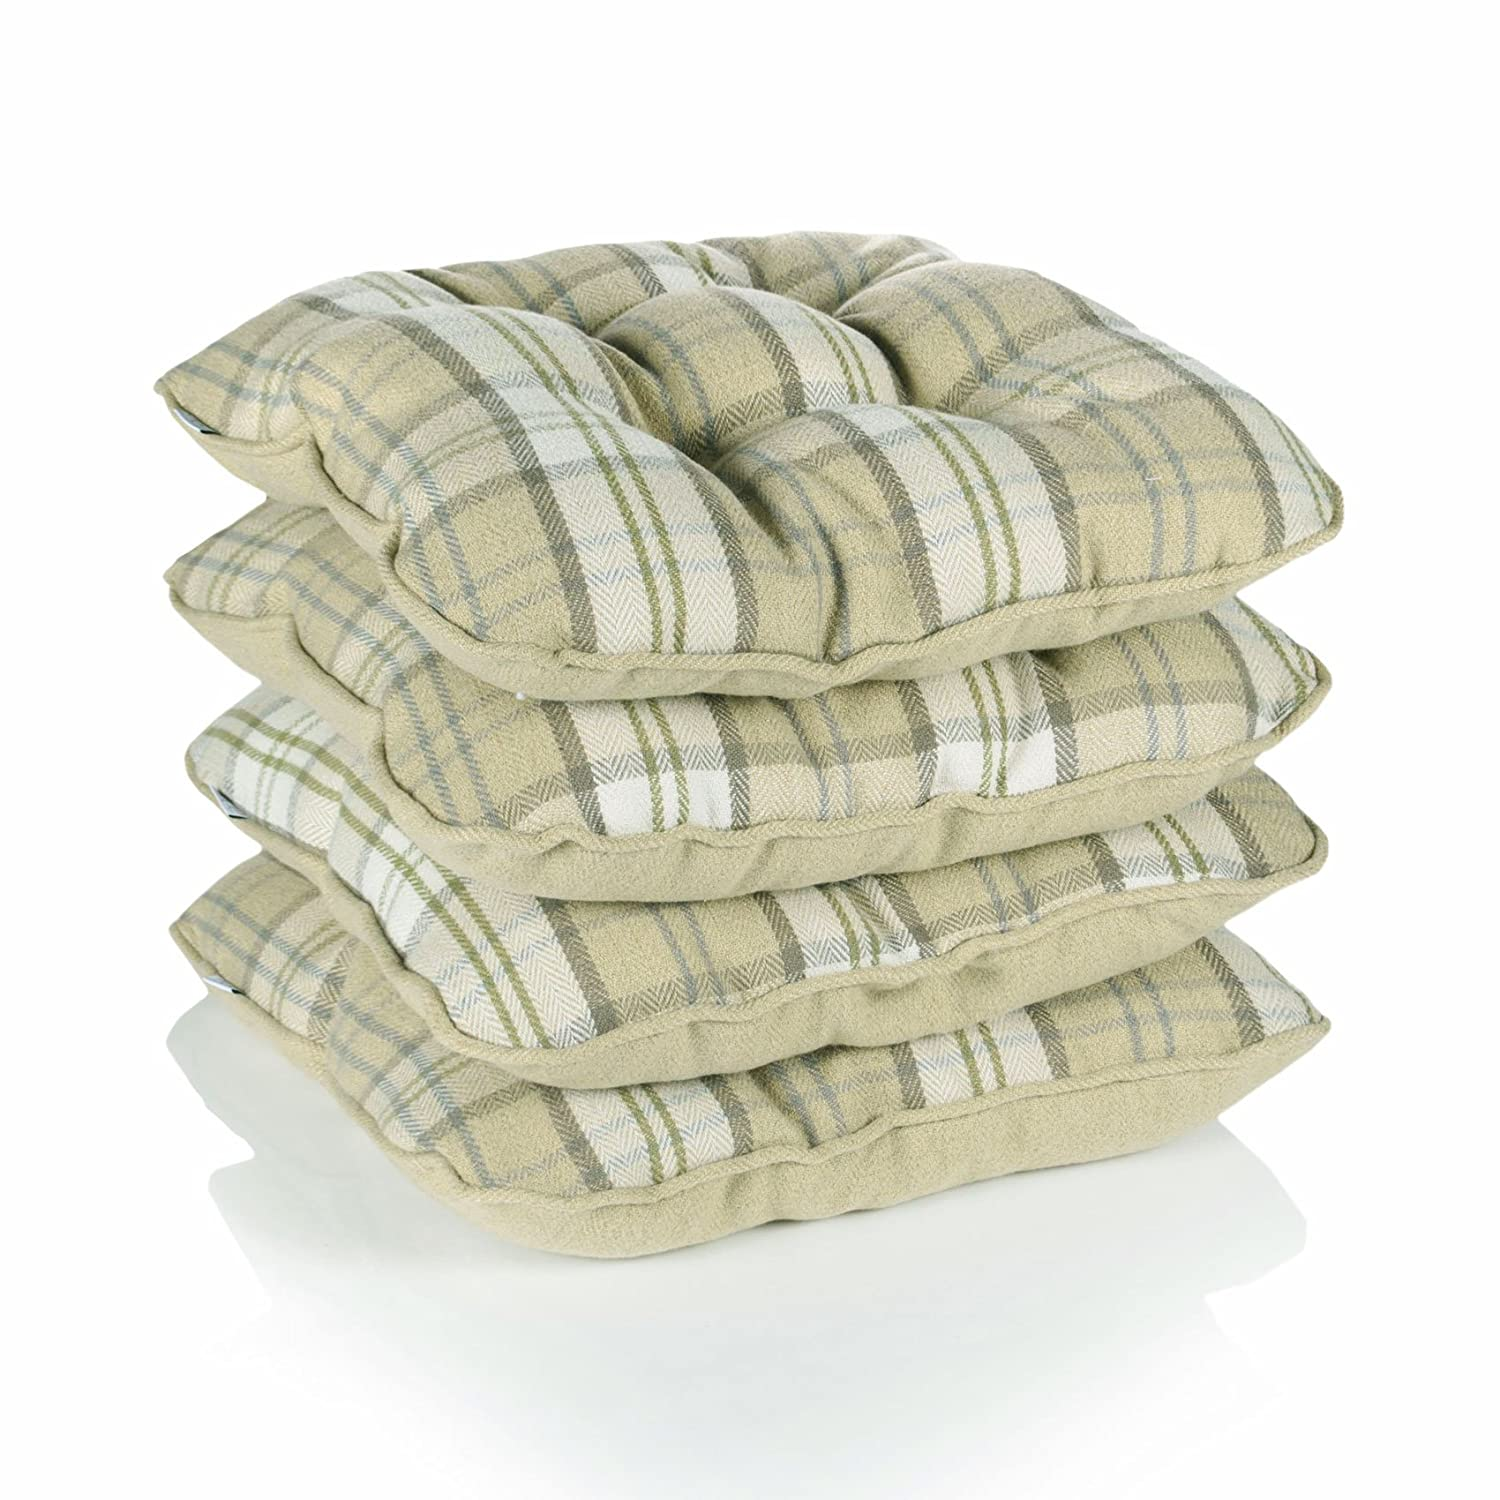 Lewis Tartan Check Piped Chunky Dining Kitchen Seat Pads, Mustard - Set of 4 Dove Mill Kitchen